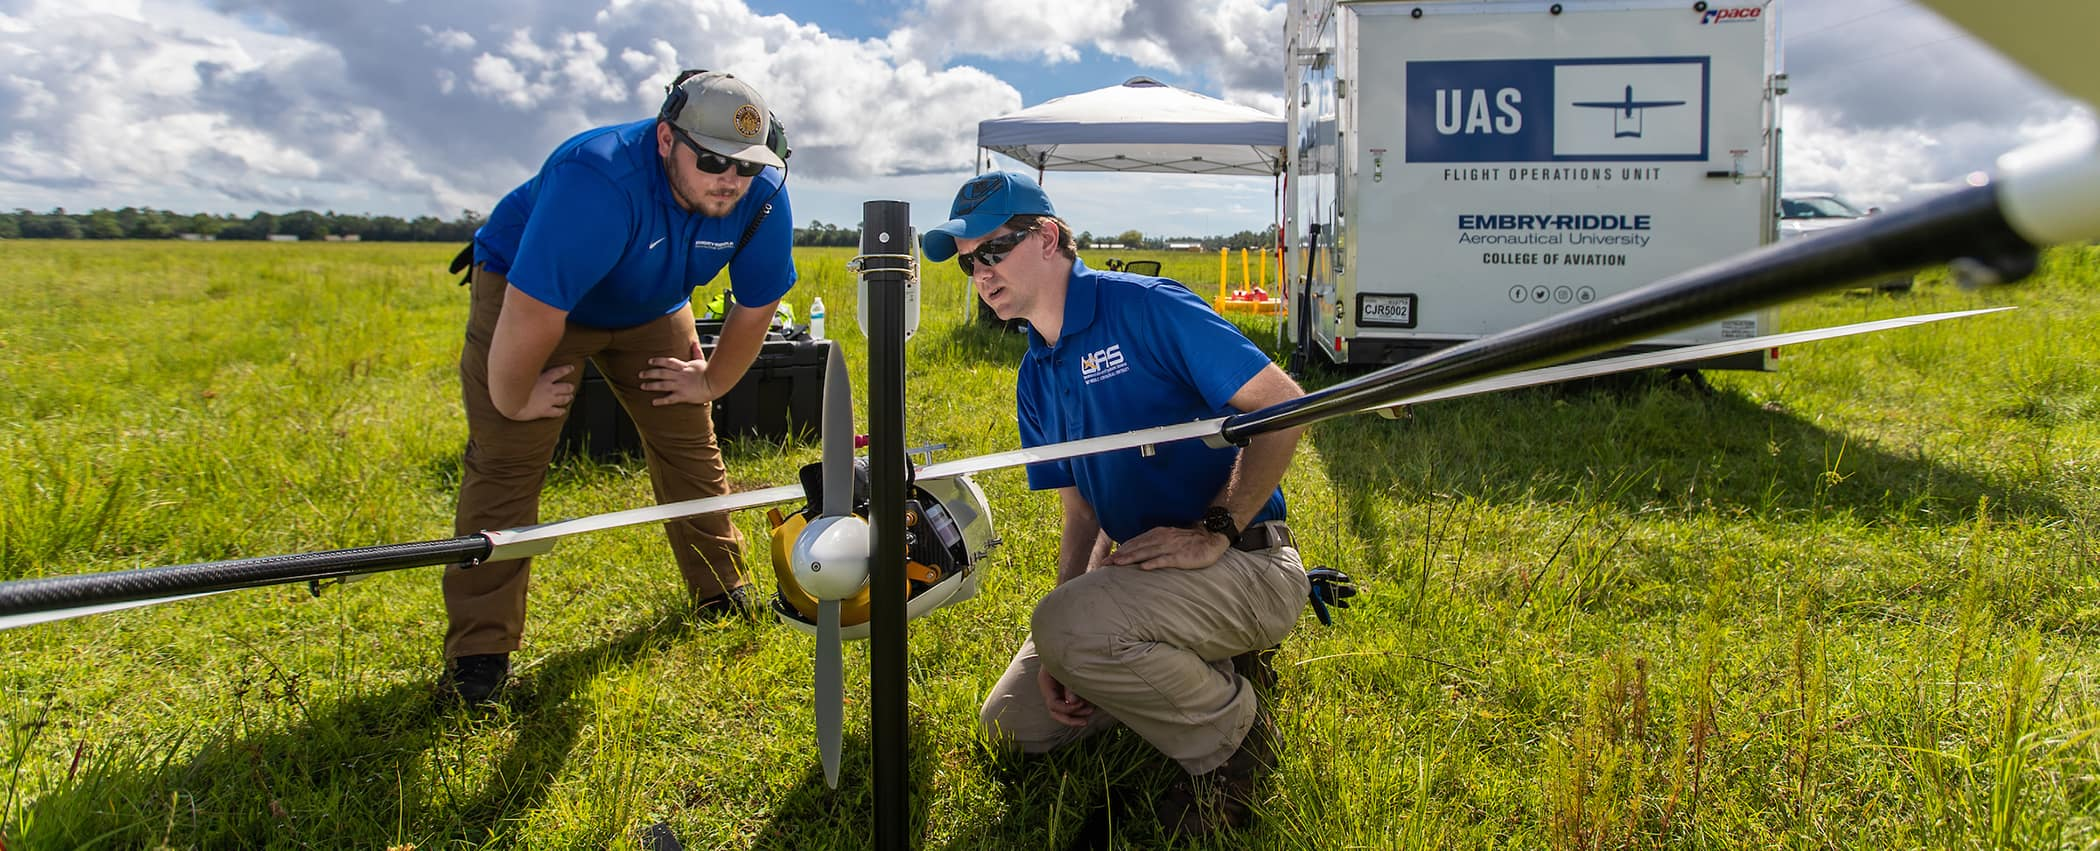 Austin Noble, student and lab assistant, left, and Michael Zebehazy,  UAS Maintenance and Inventory Manager and Crew Chief, prepare the Penguin C UAV platform for flight in West Bunnell, July 29, 2019.  (Embry-Riddle/David Massey)